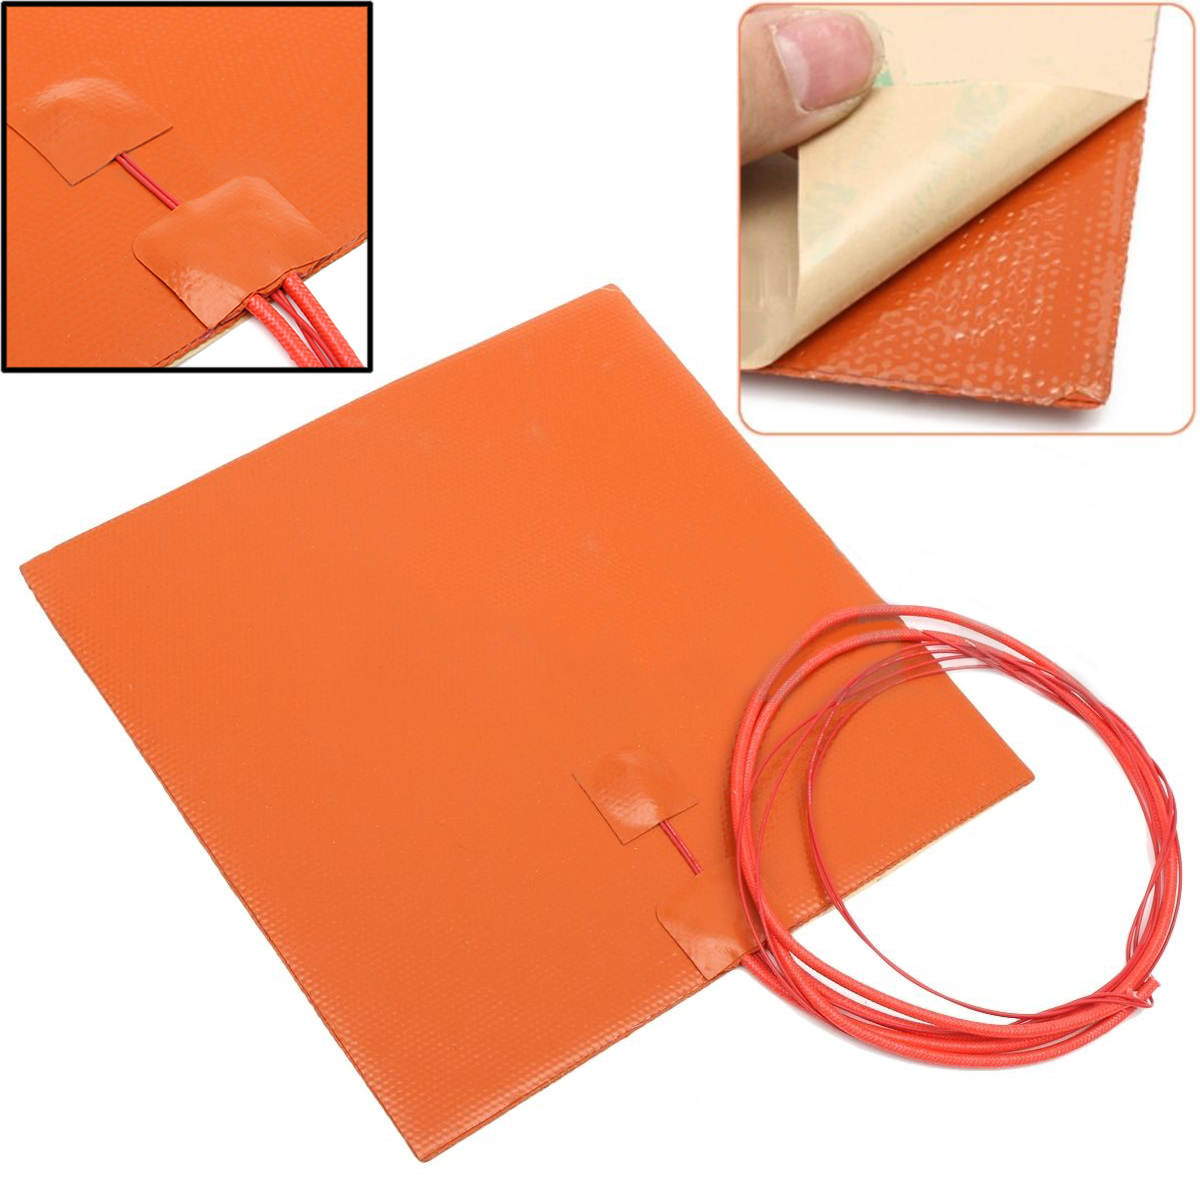 1pc Durable 200W 12V Rubber Silicone Heater Pad For 3D Printer Duplicating Machines Heated Bed Mayitr Heating Mat 200*200mm dia 400mm 900w 120v 3m ntc 100k round tank silicone heater huge 3d printer build plate heated bed electric heating plate element